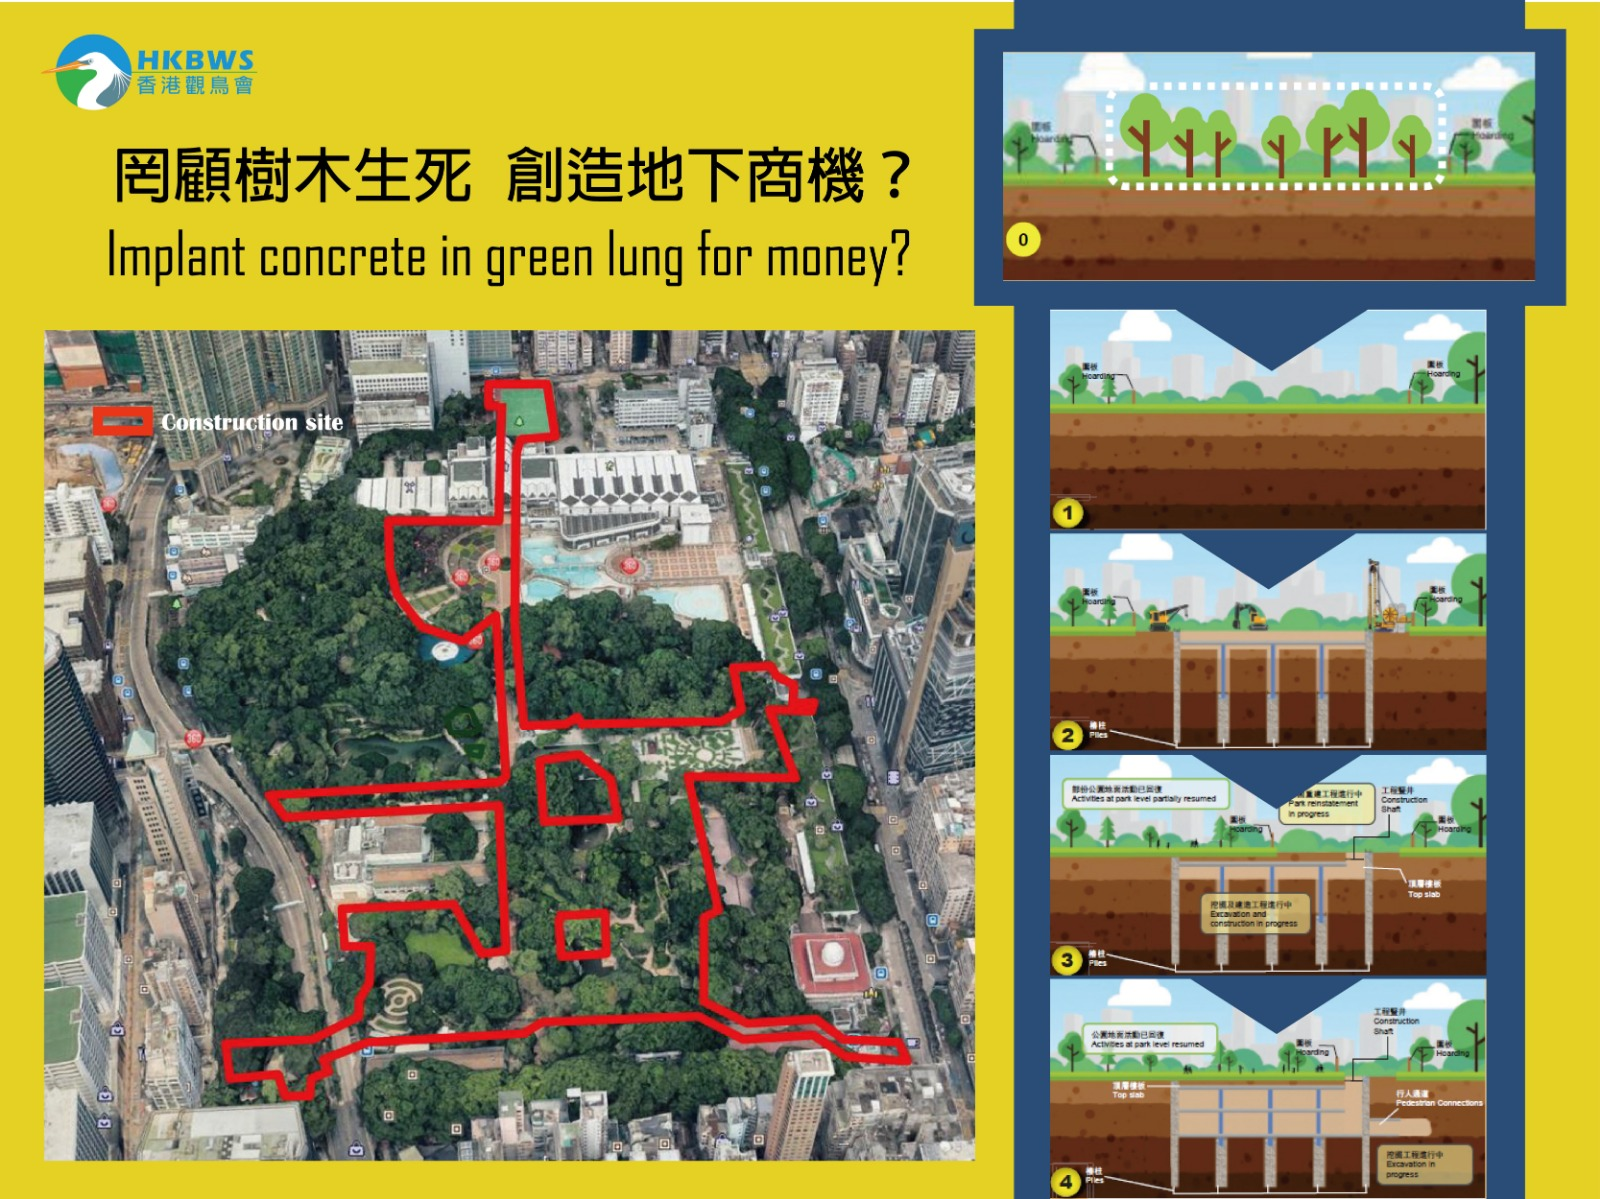 Underground Space Development at Kowloon Park - Implant concrete in green lung for money?